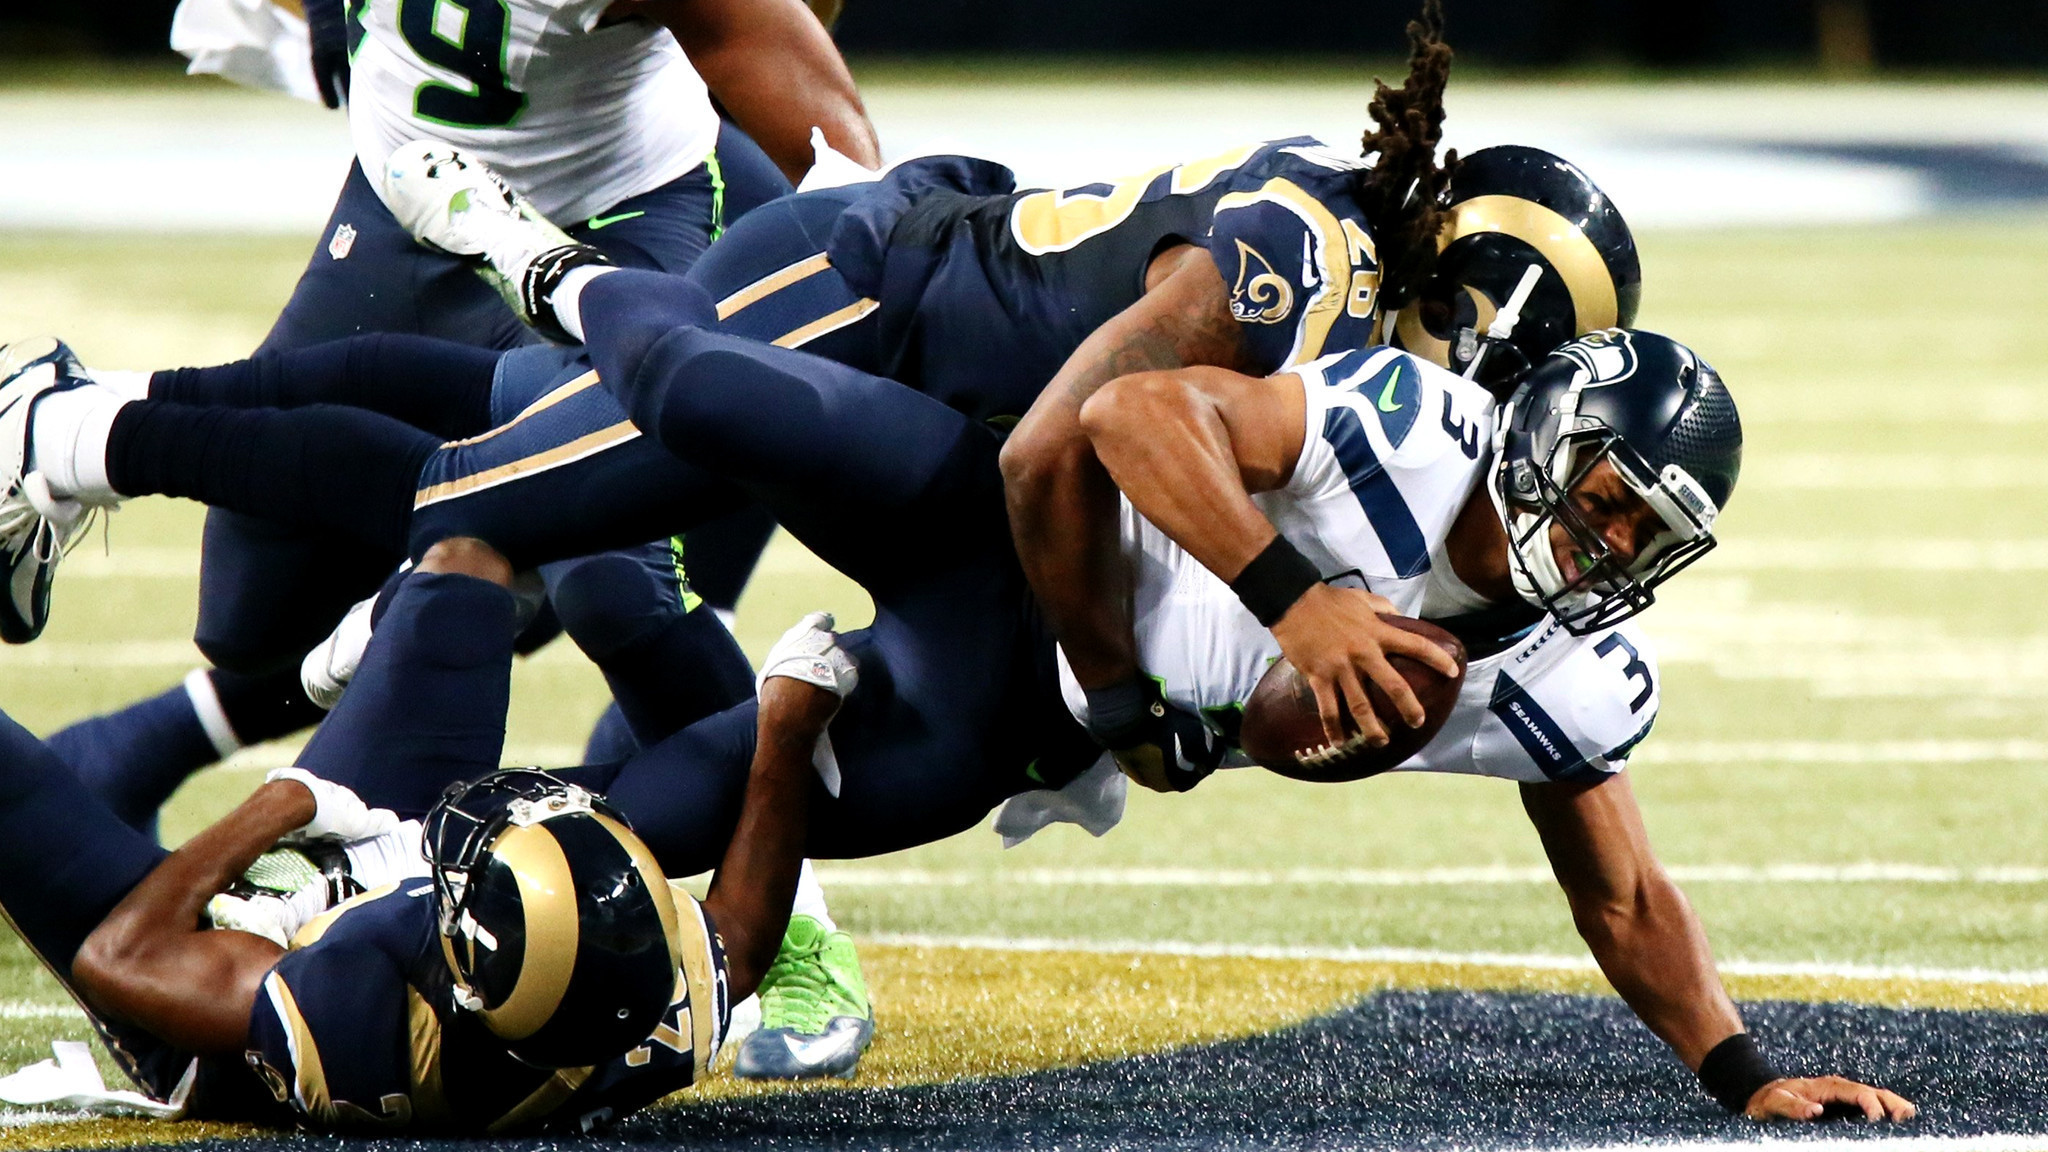 Rams vs. Seahawks: How they compare - Hoy